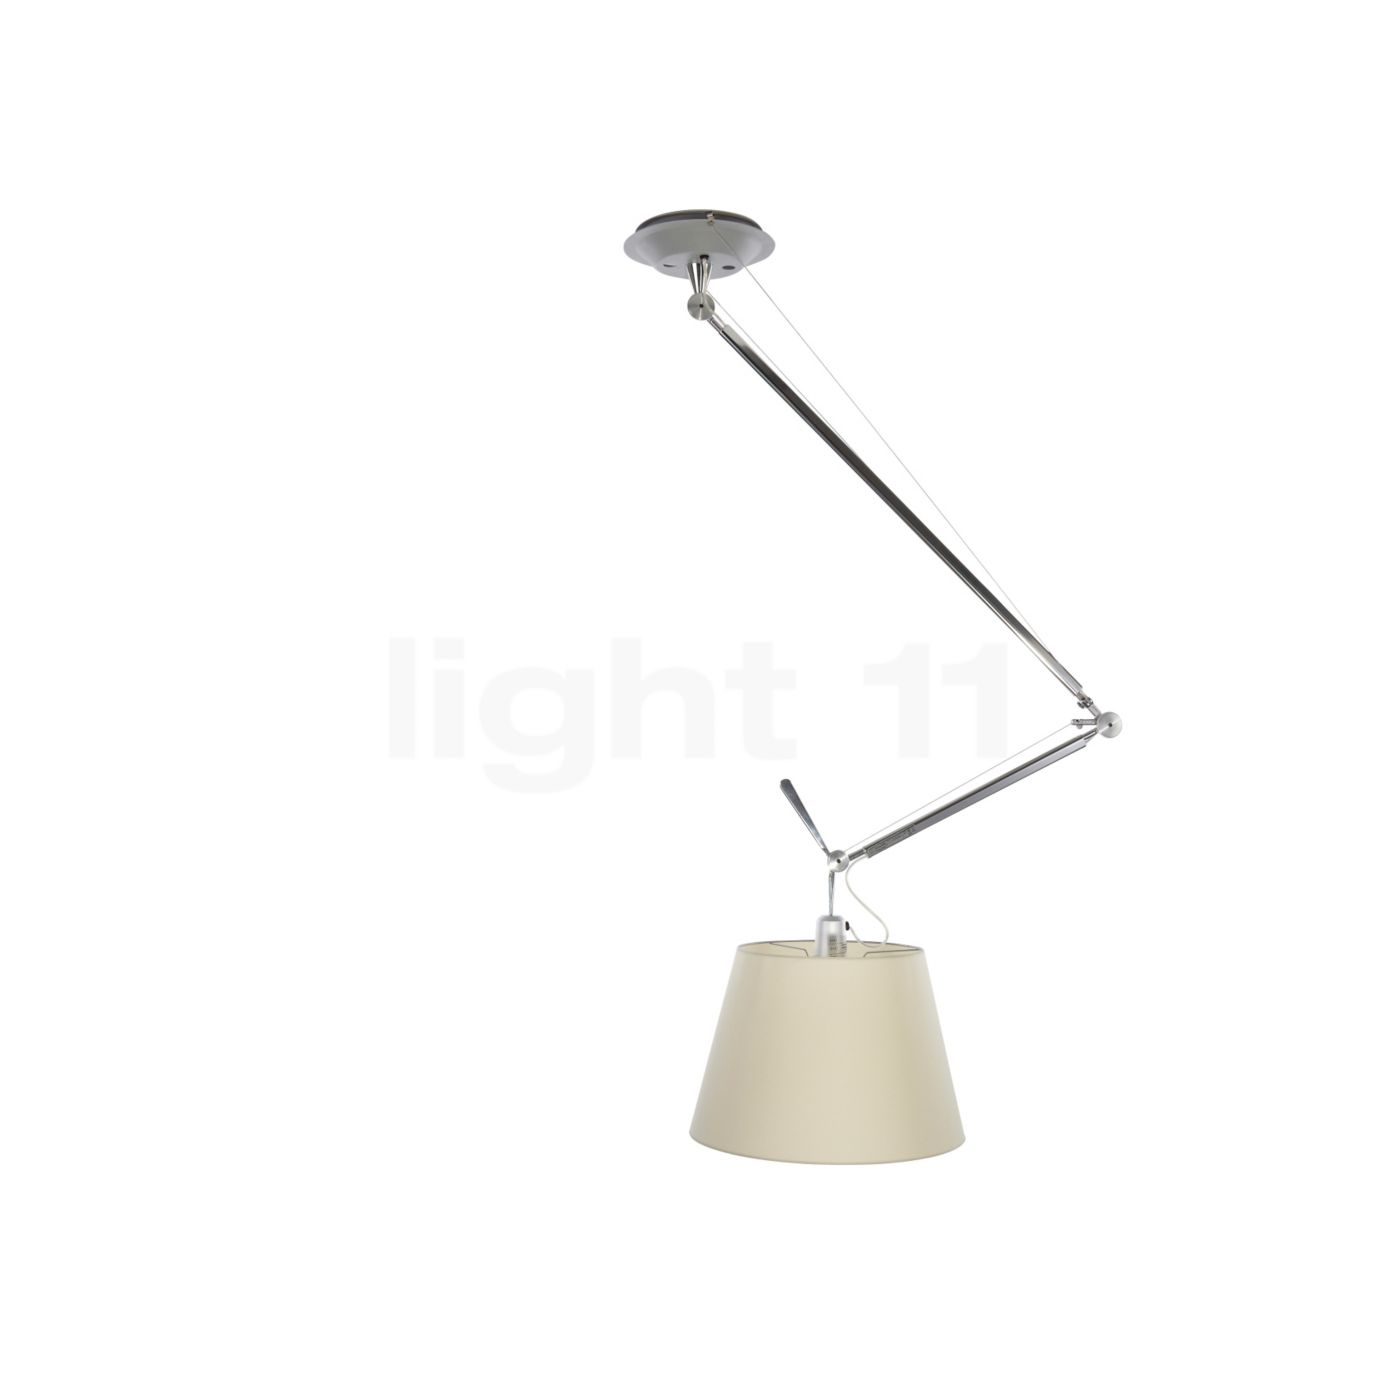 Artemide tolomeo sospensione decentrata pendant lights mozeypictures Image collections